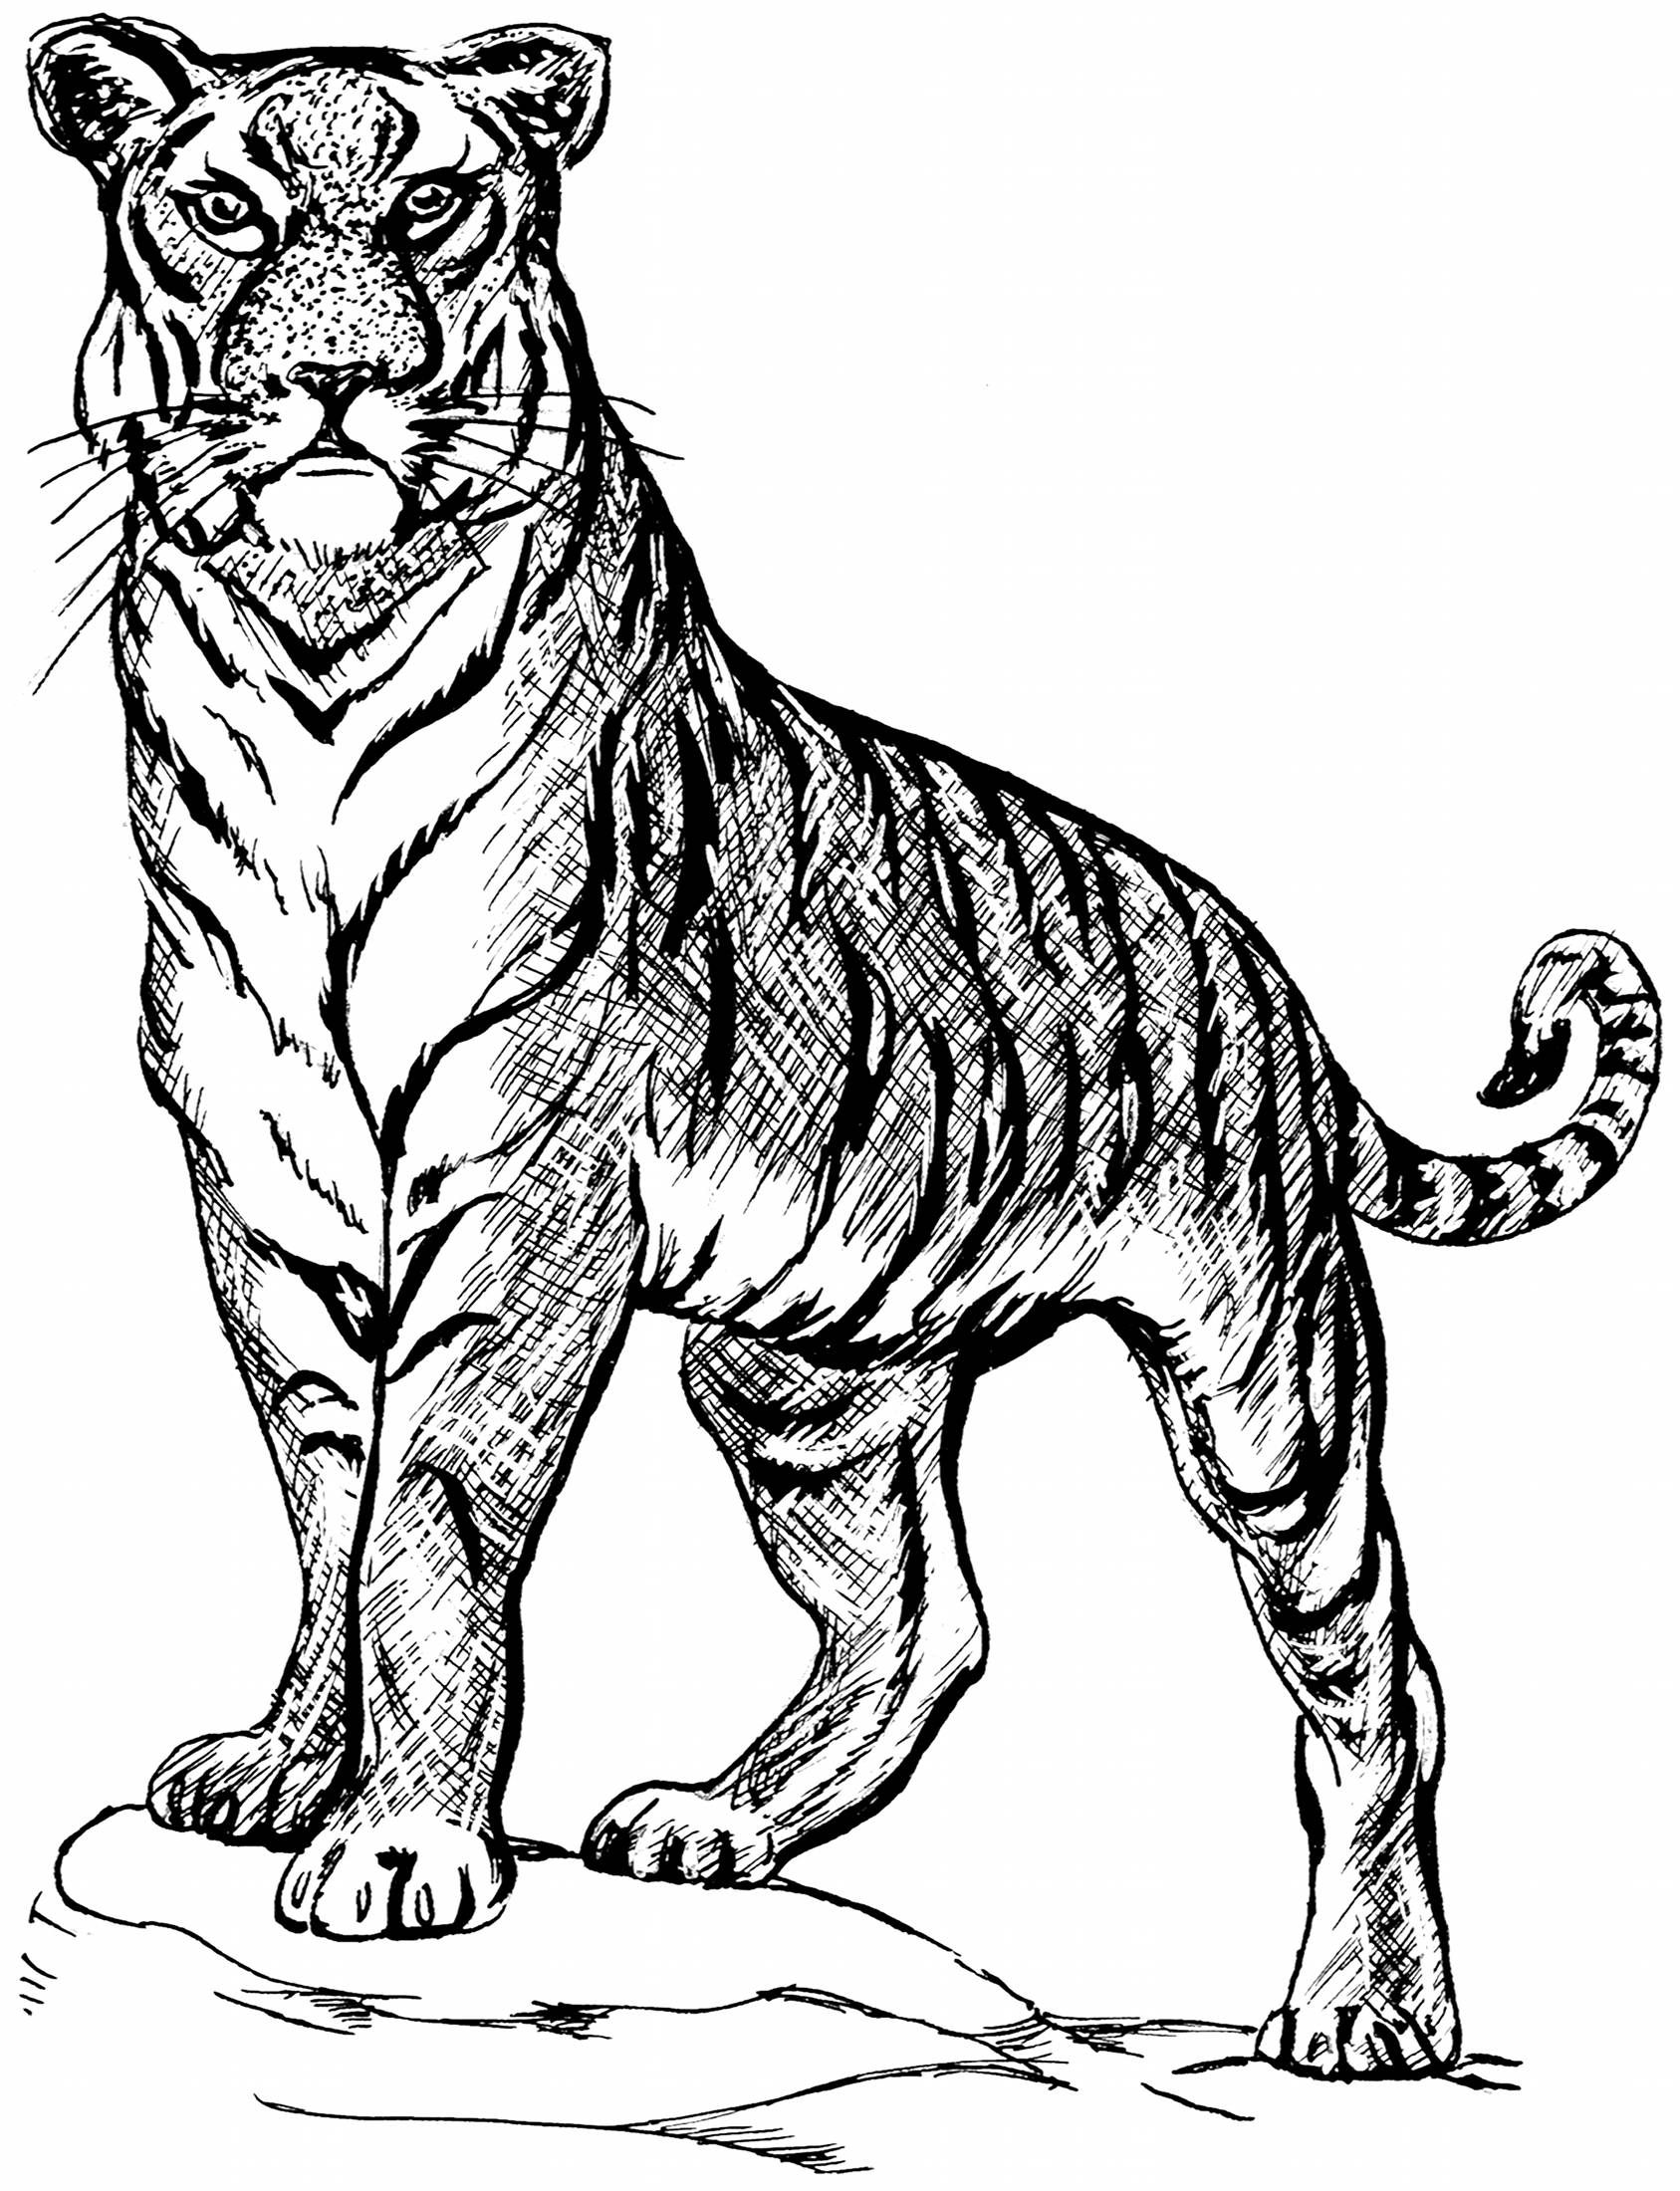 cool tiger coloring pages cool waiting big tiger coloring page animal coloring pages tiger cool coloring